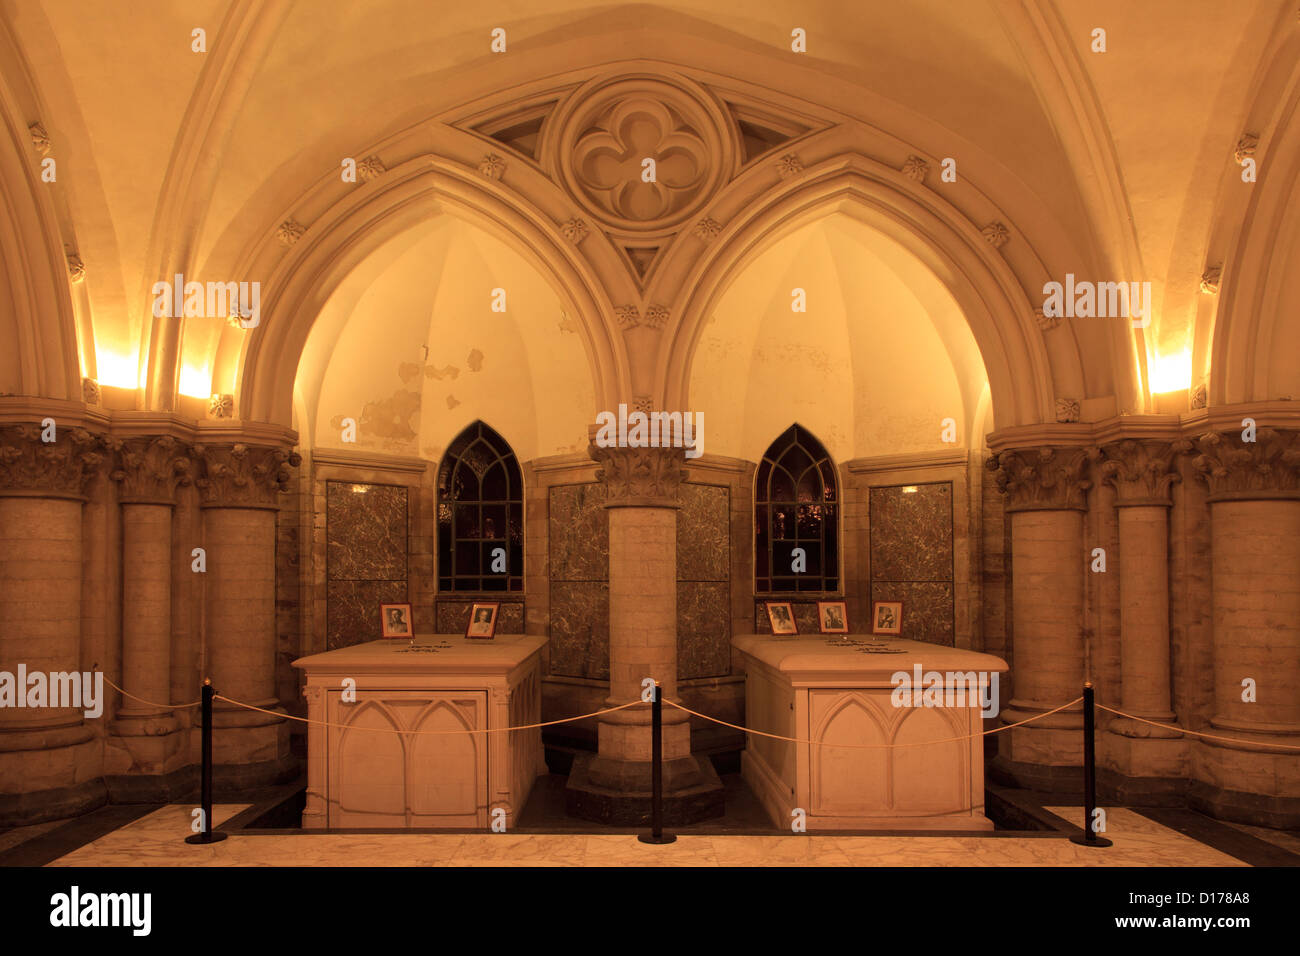 The graves of King Albert I and spouse & King Leopold III & spouses at the Royal Crypt in Laeken, Belgium - Stock Image